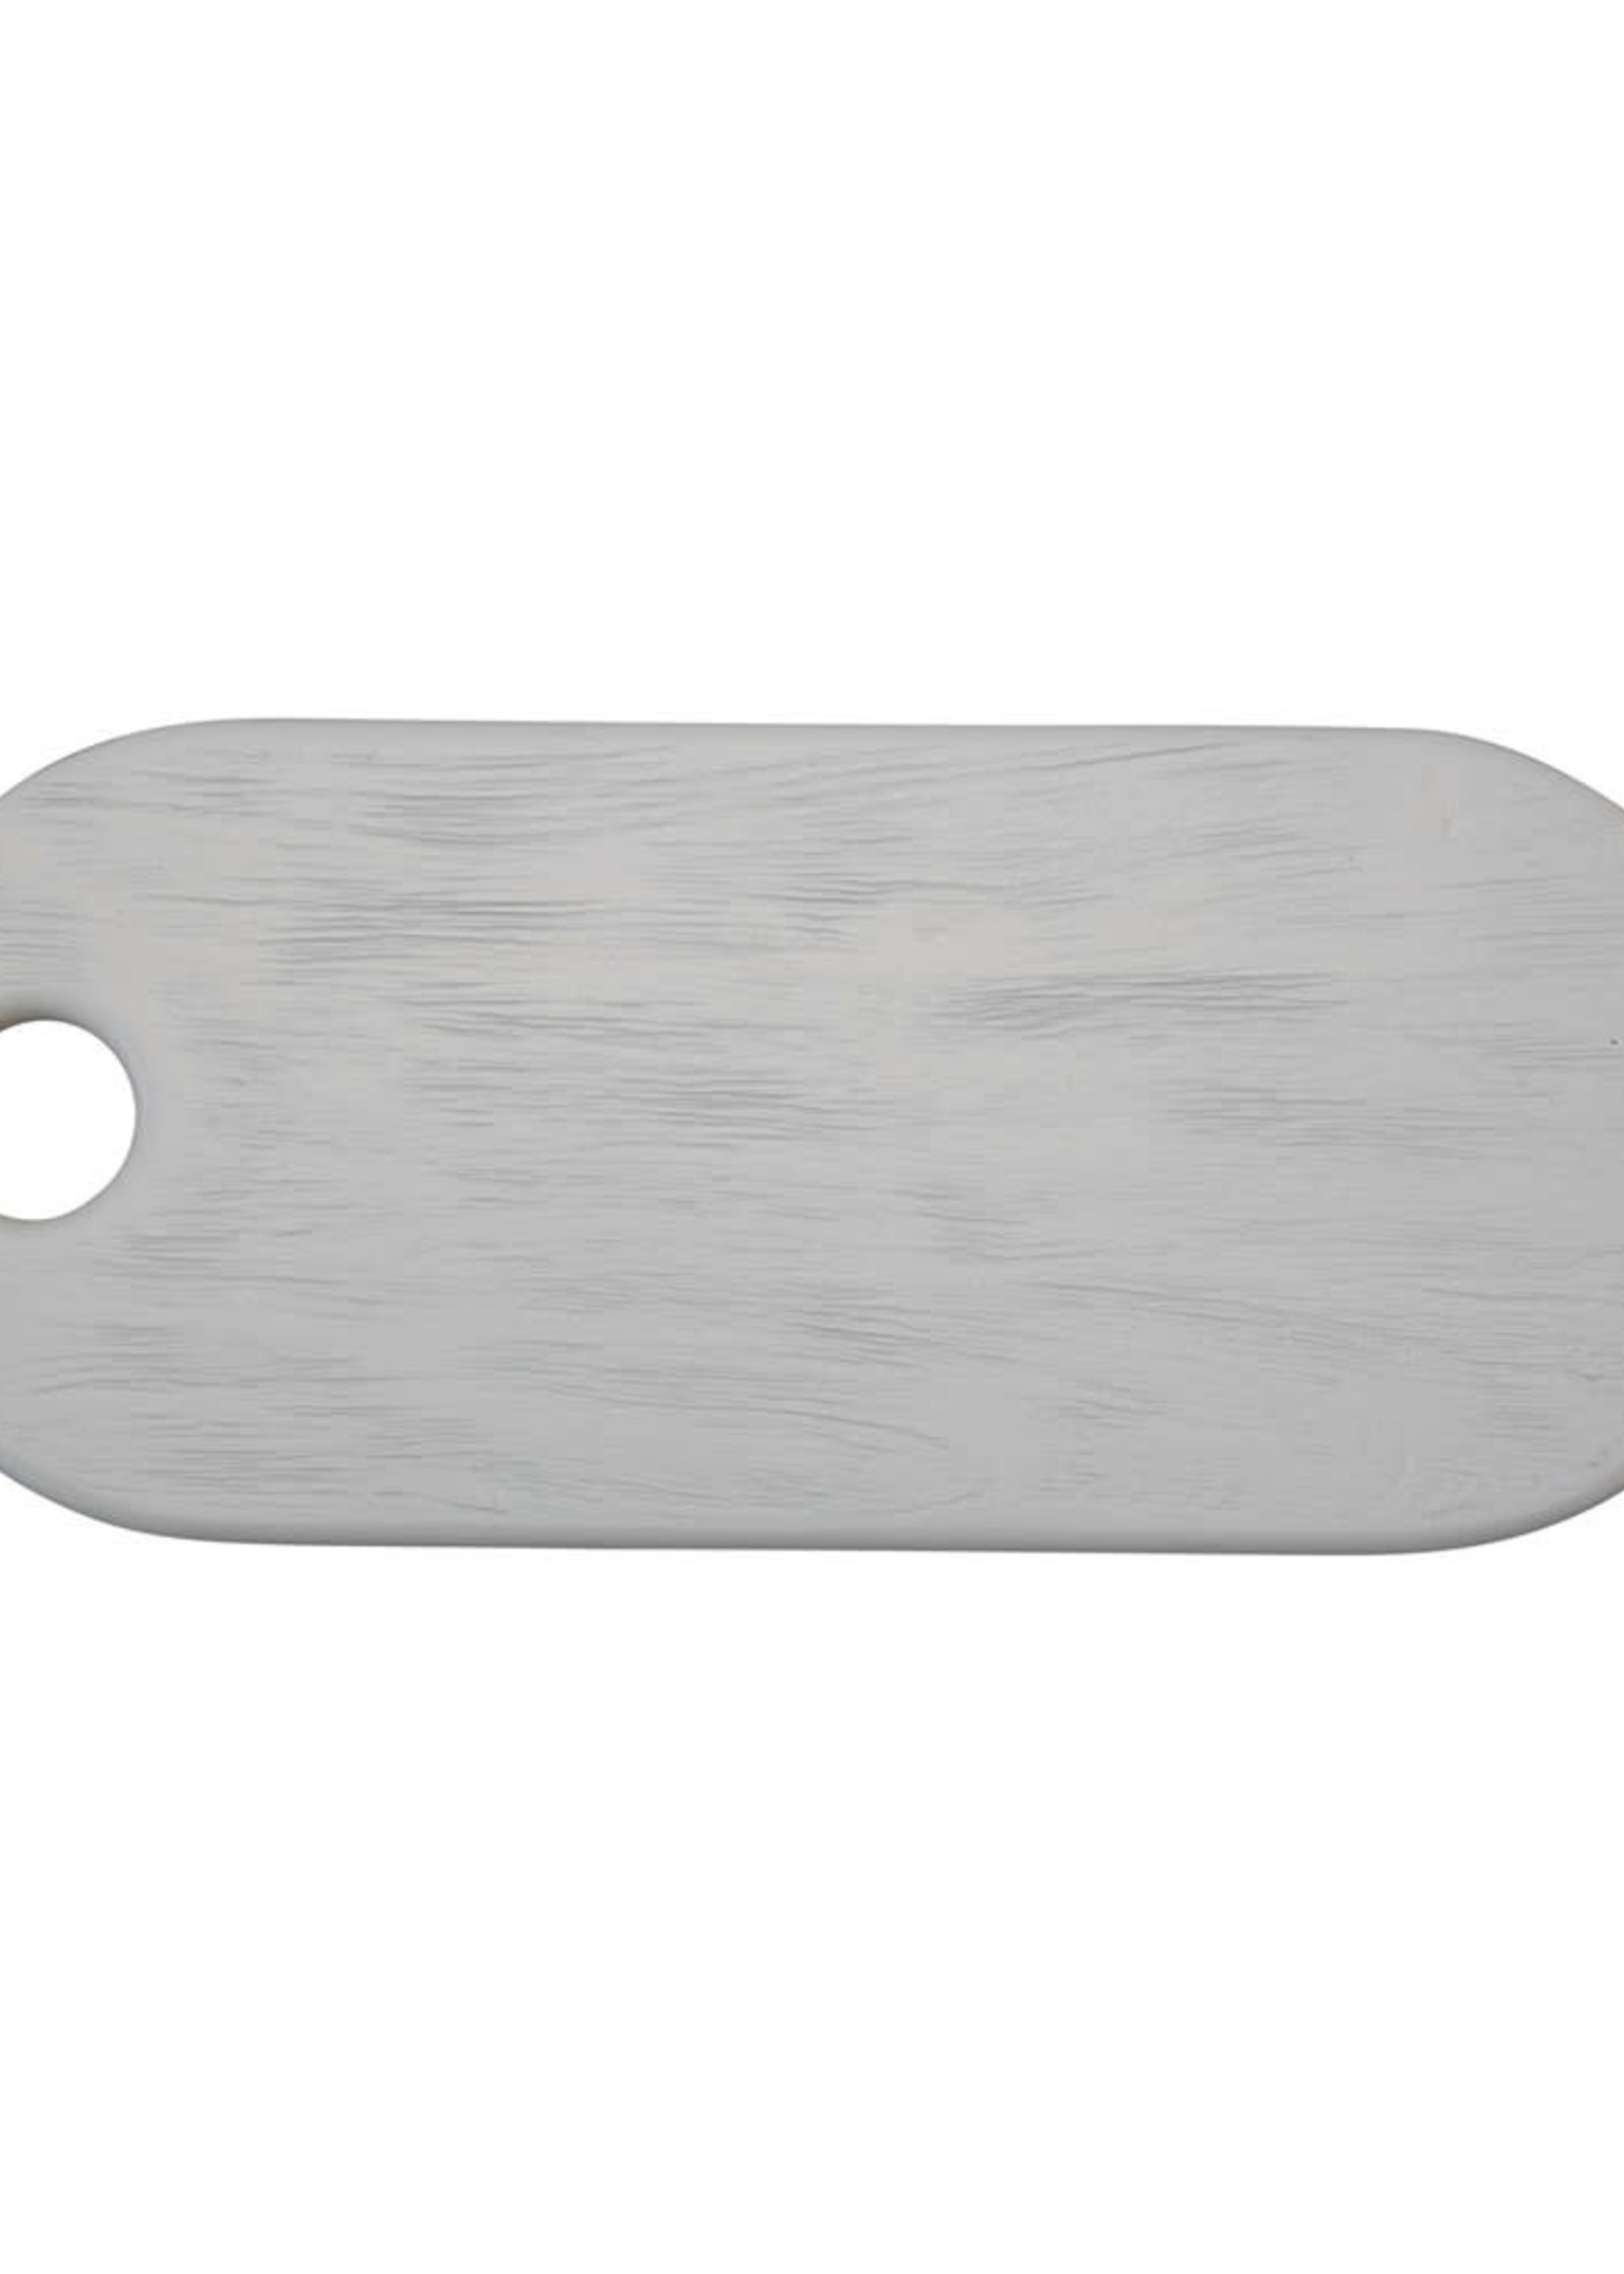 Acacia Wood Cheese/Cutting Board, Combed White Finish